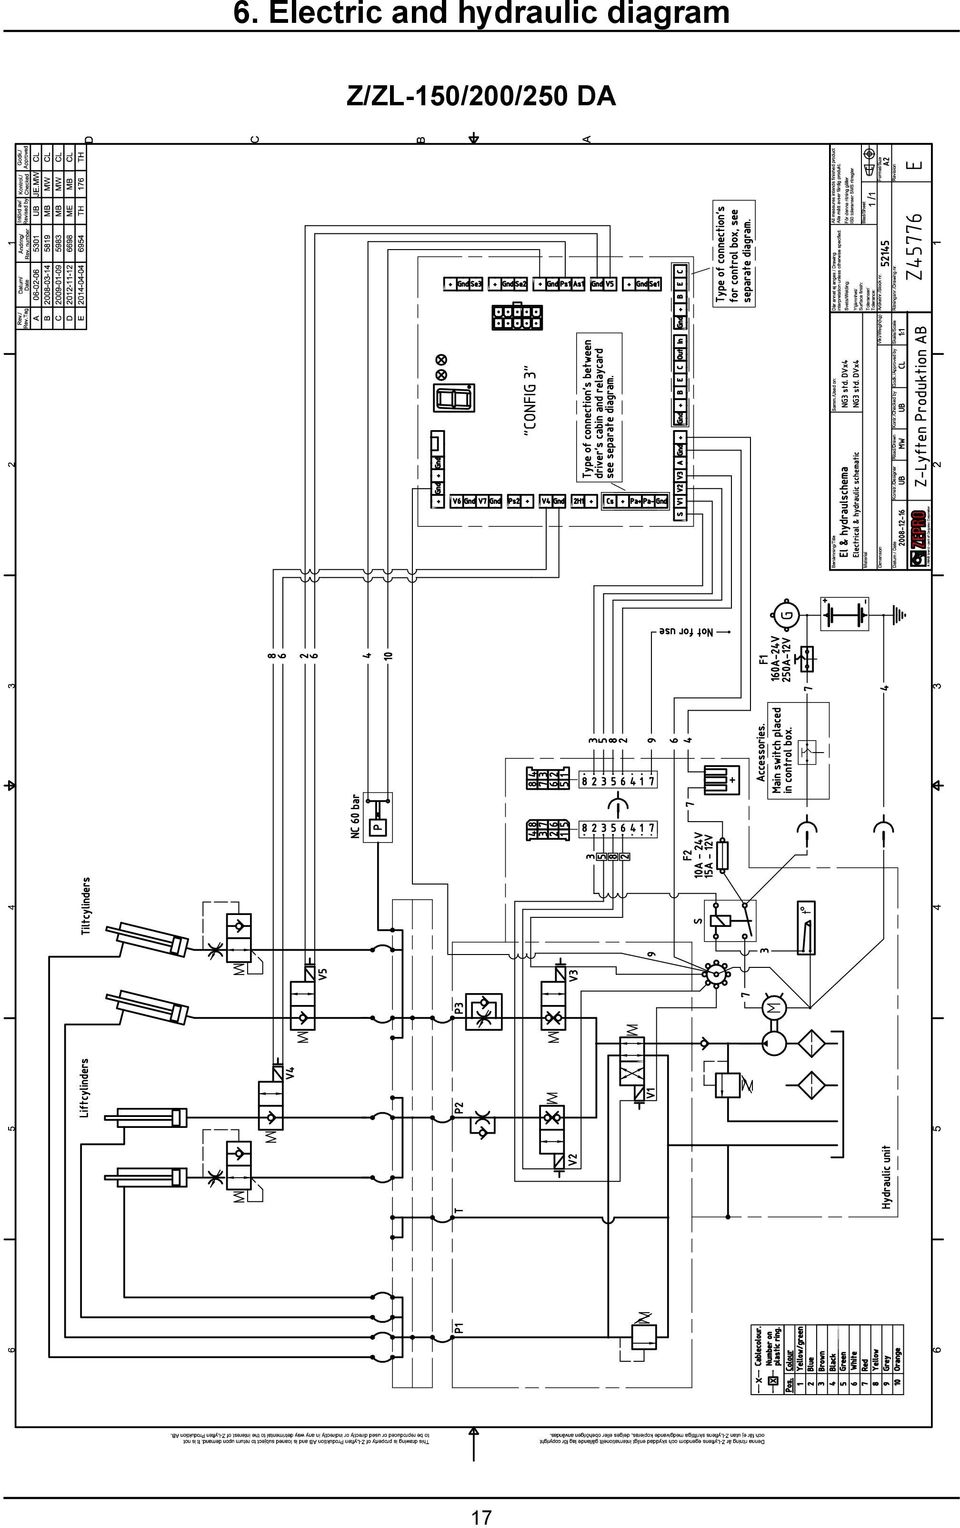 Anthony Liftgate Switch Wiring Diagram Trusted Diagrams Maxon 280253 Free Download Power Windows